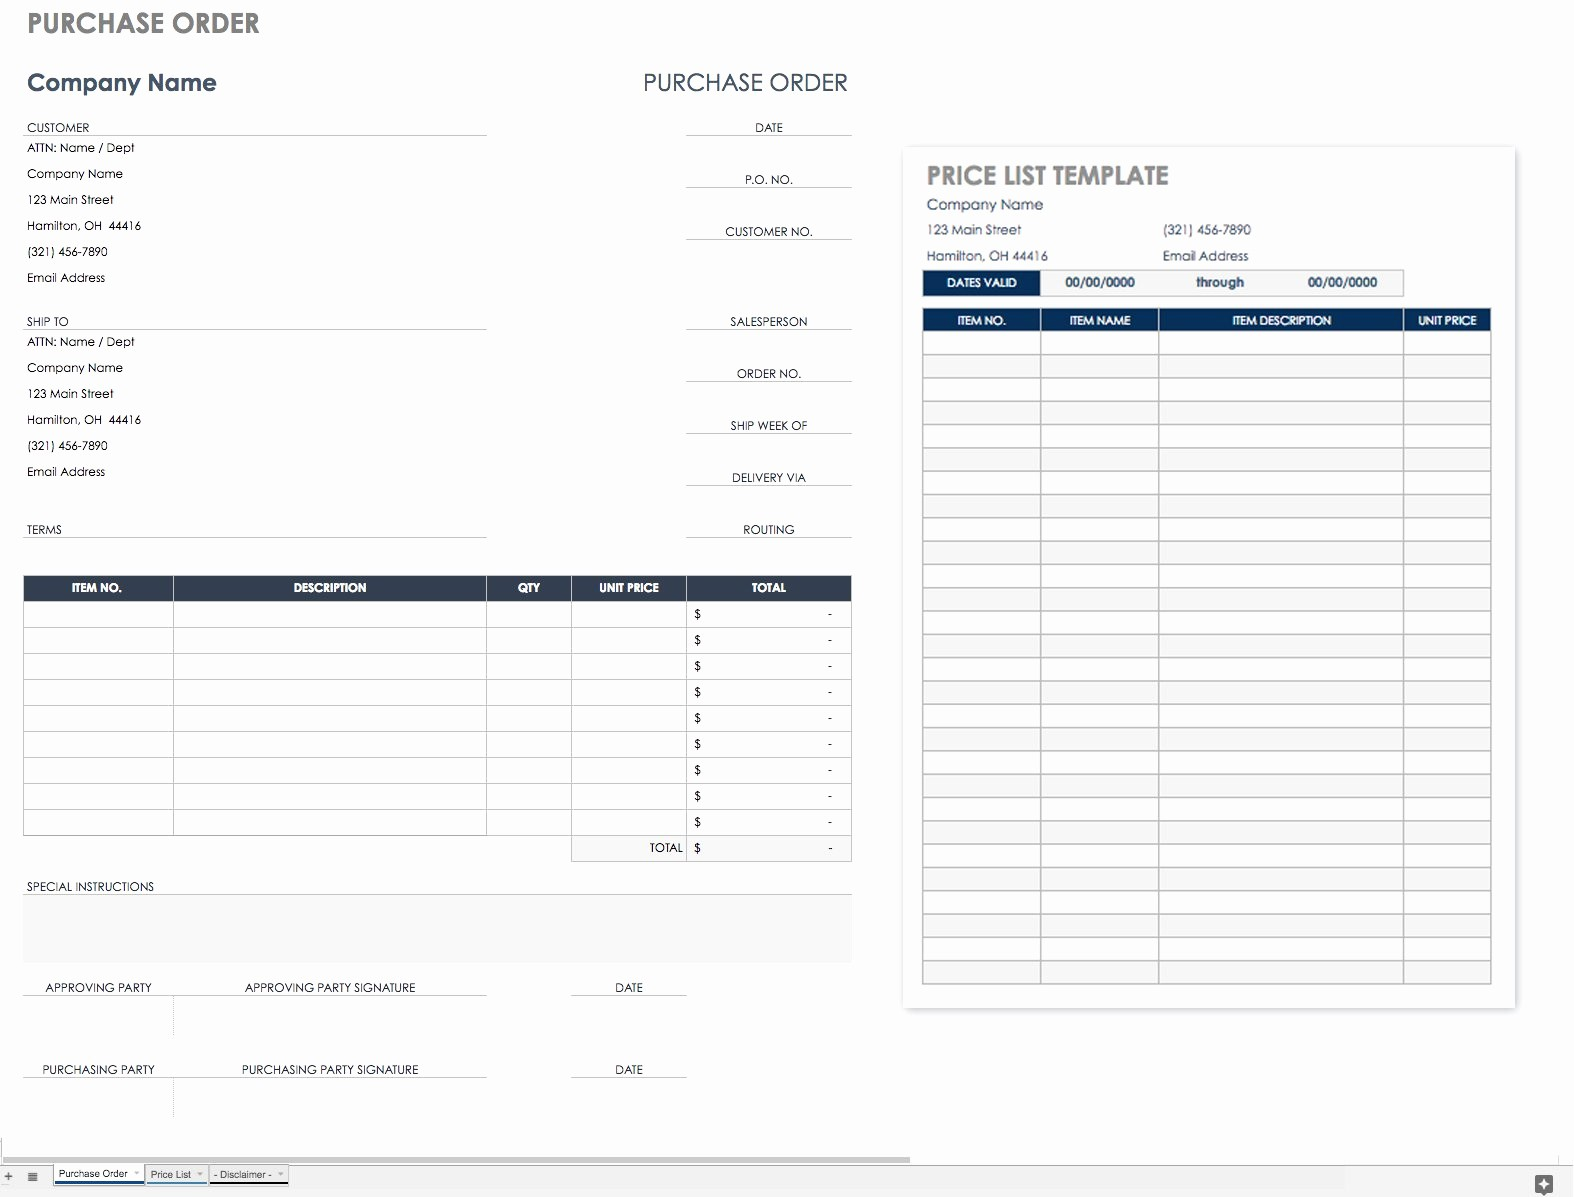 Purchase order Tracking Excel Spreadsheet Beautiful Free Purchase order Templates Smartsheet Tracking Excel